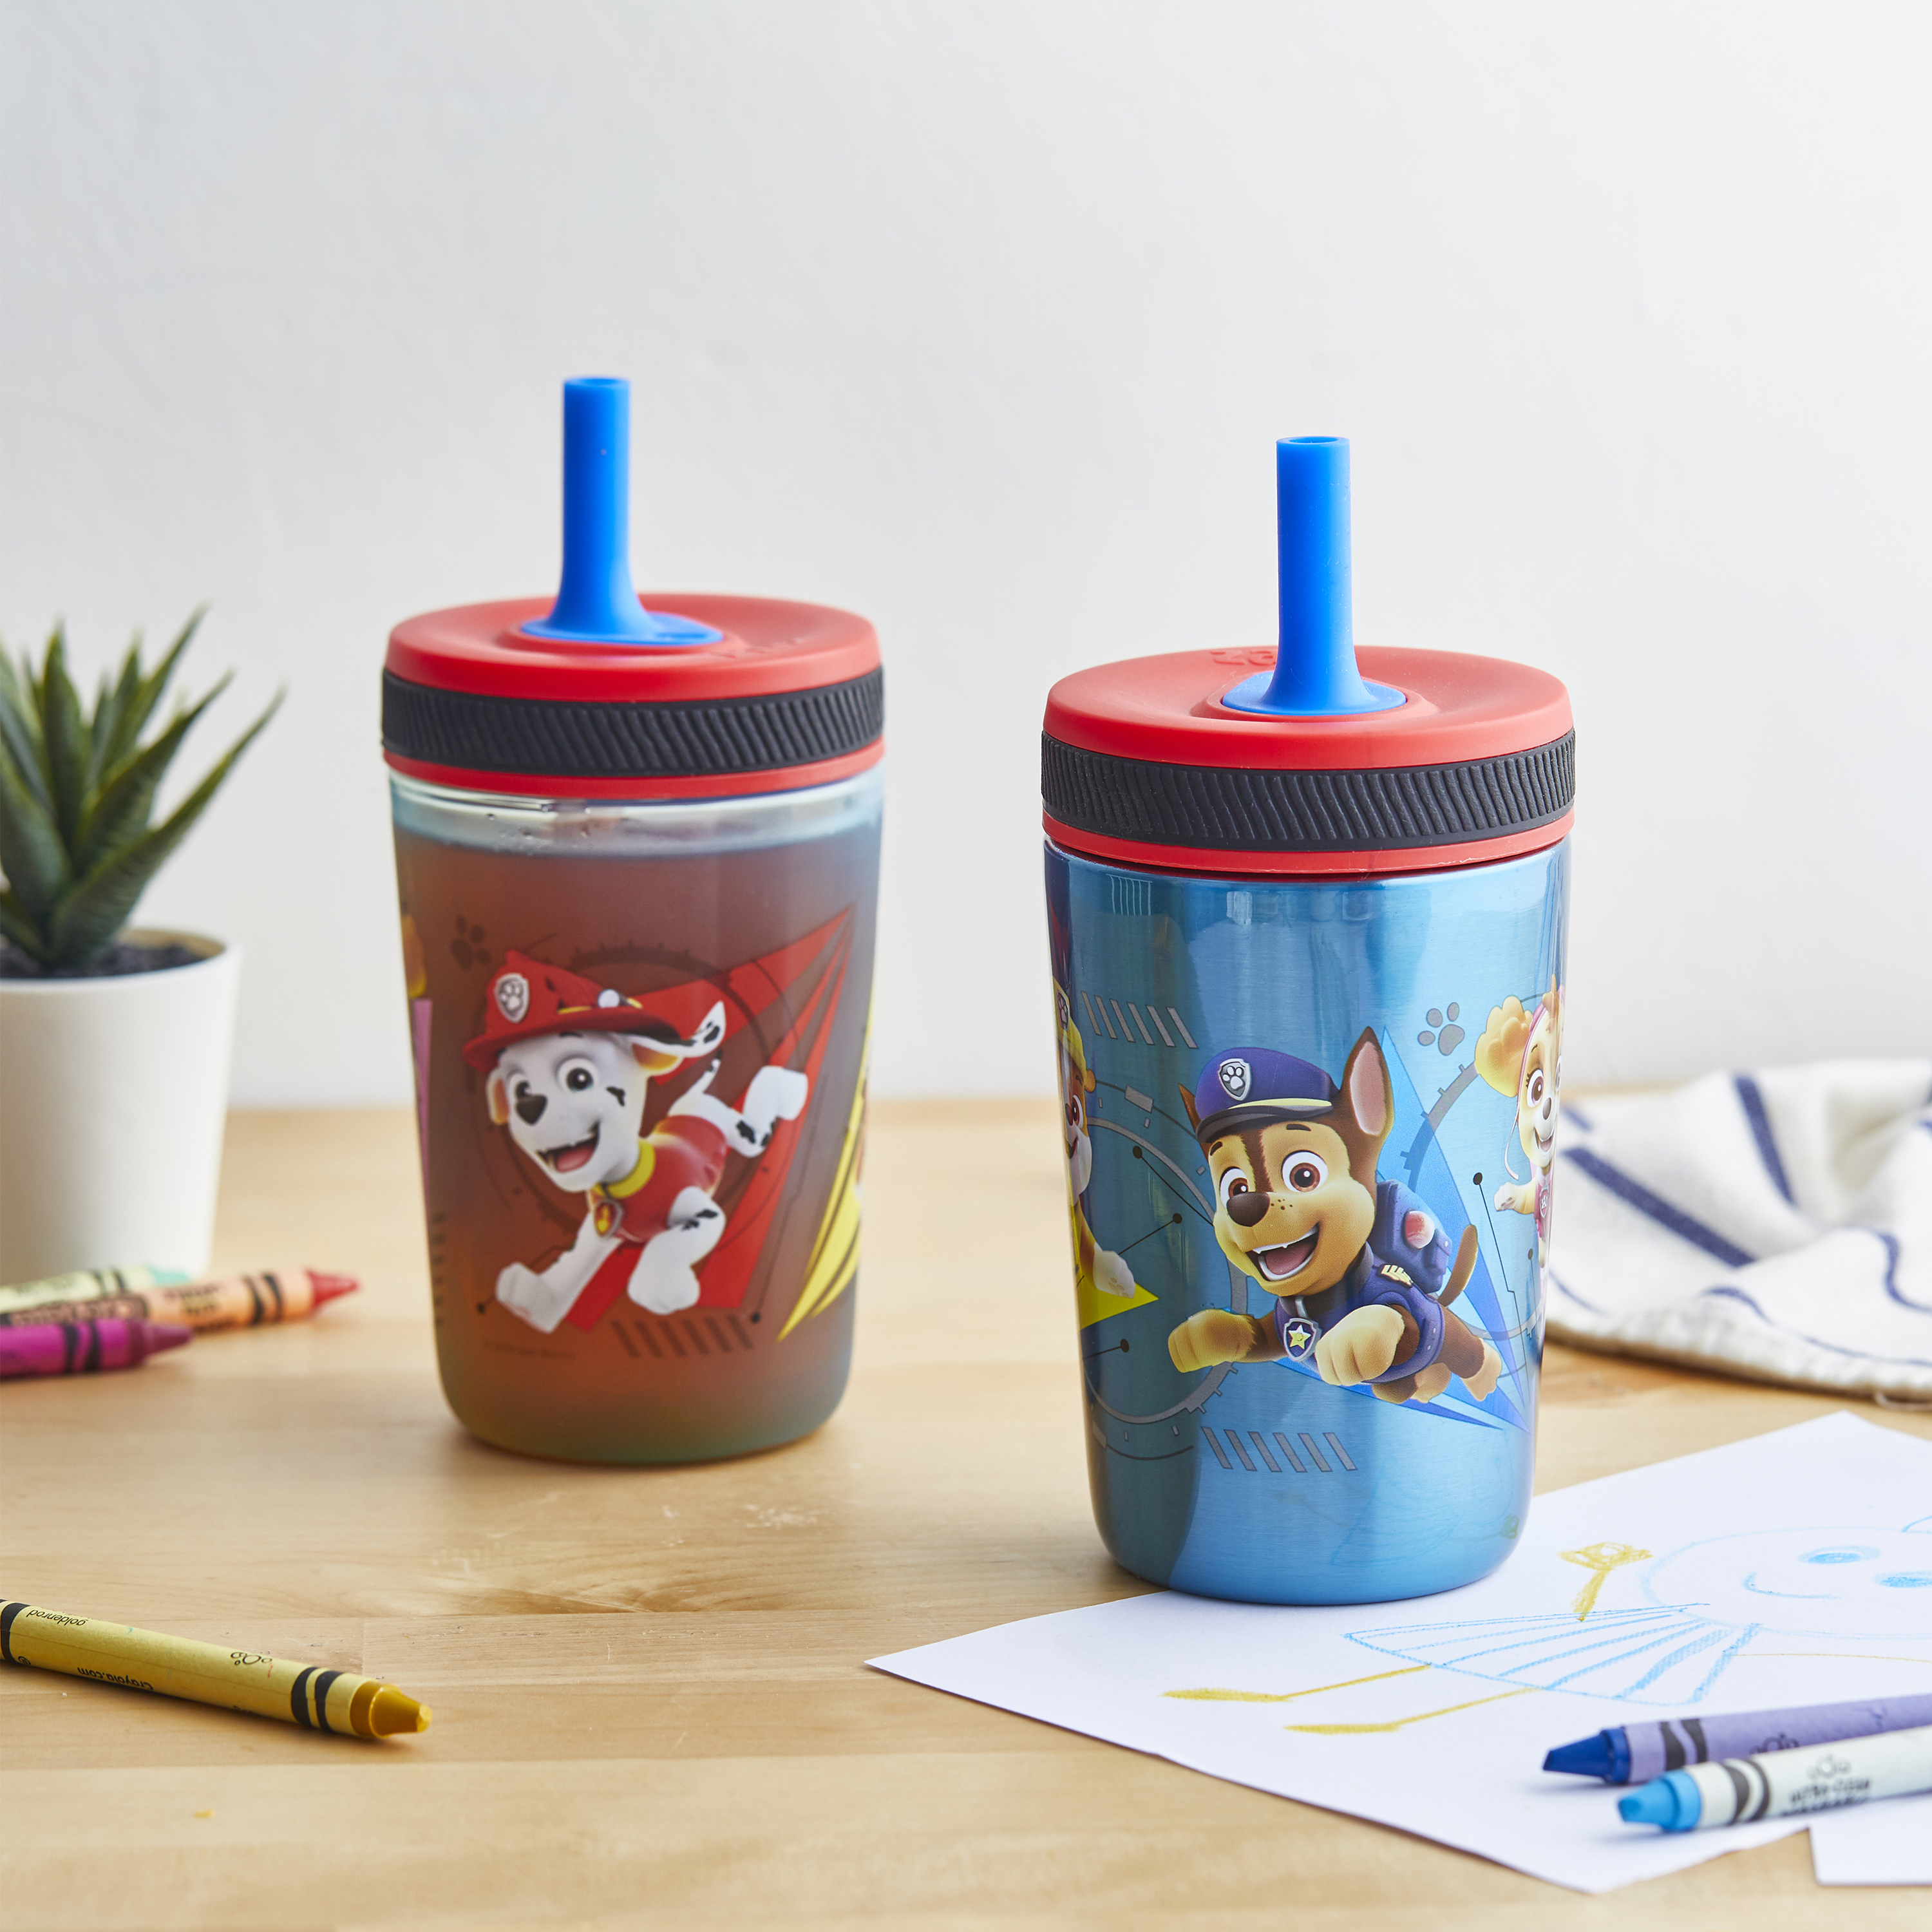 Paw Patrol 15  ounce Plastic Tumbler, Chase, Skye, Marshall and Friends, 3-piece set slideshow image 9